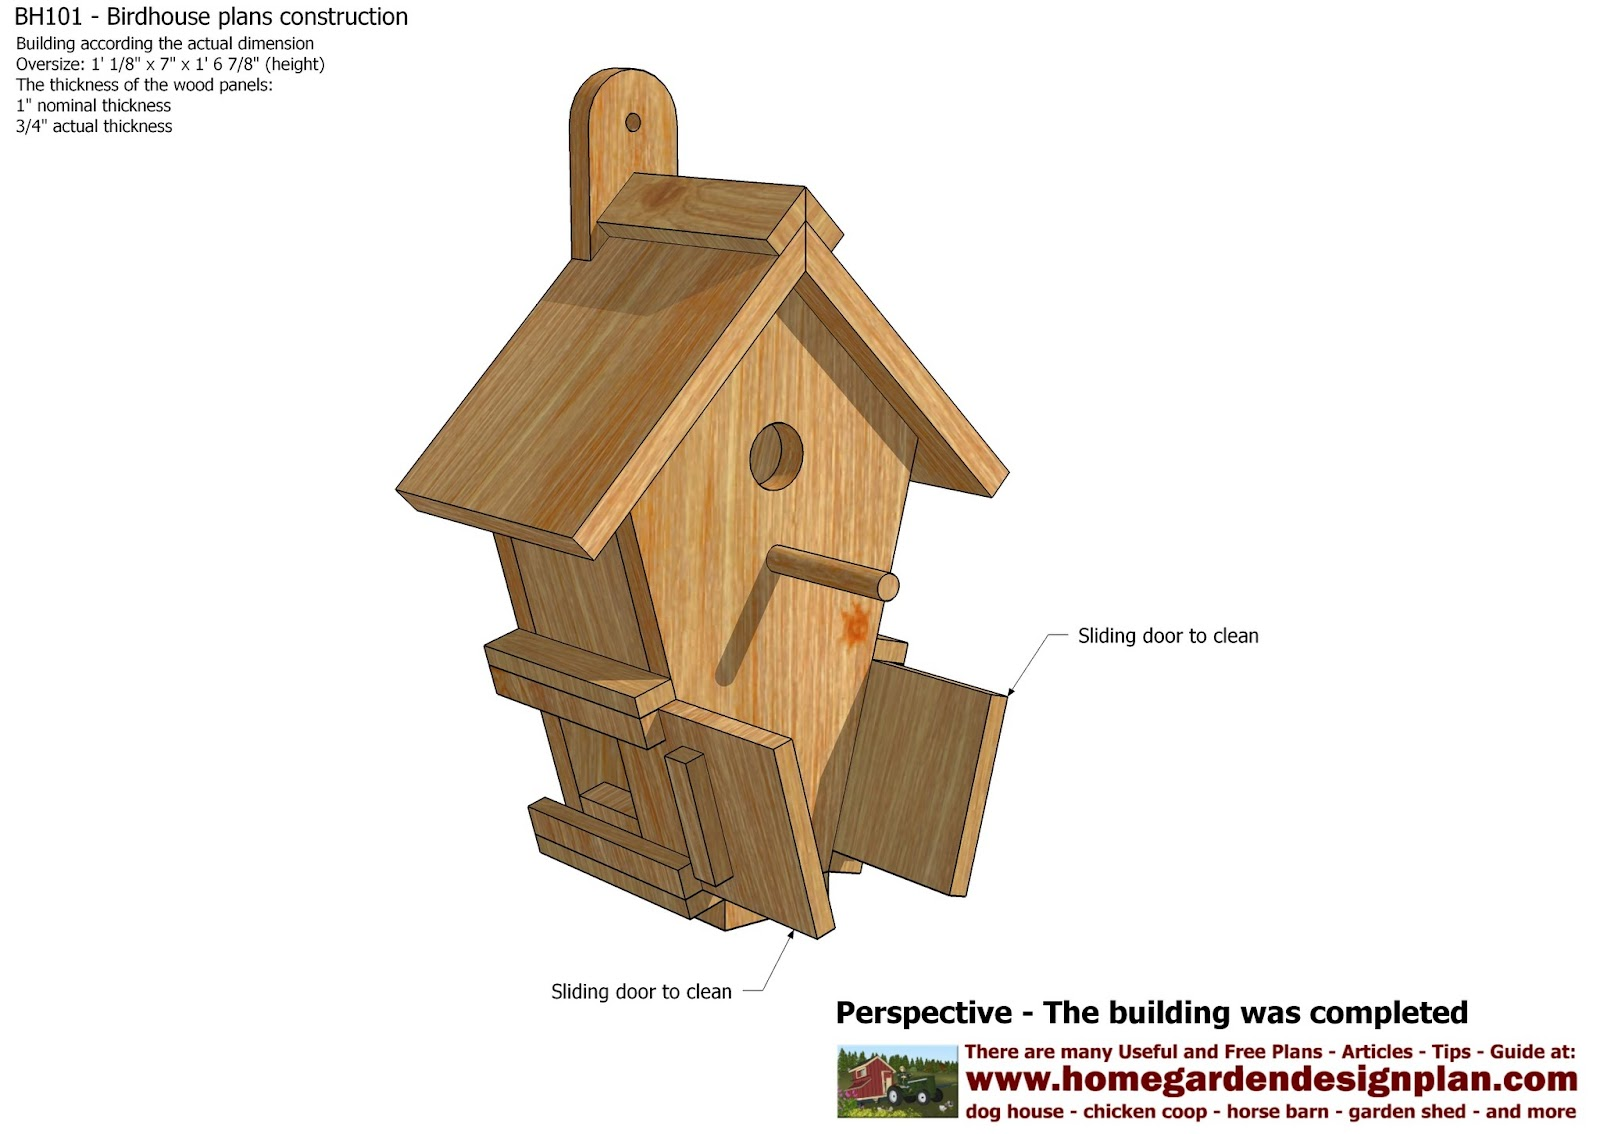 Home Garden Plans Bh101 Bird House Plans Construction